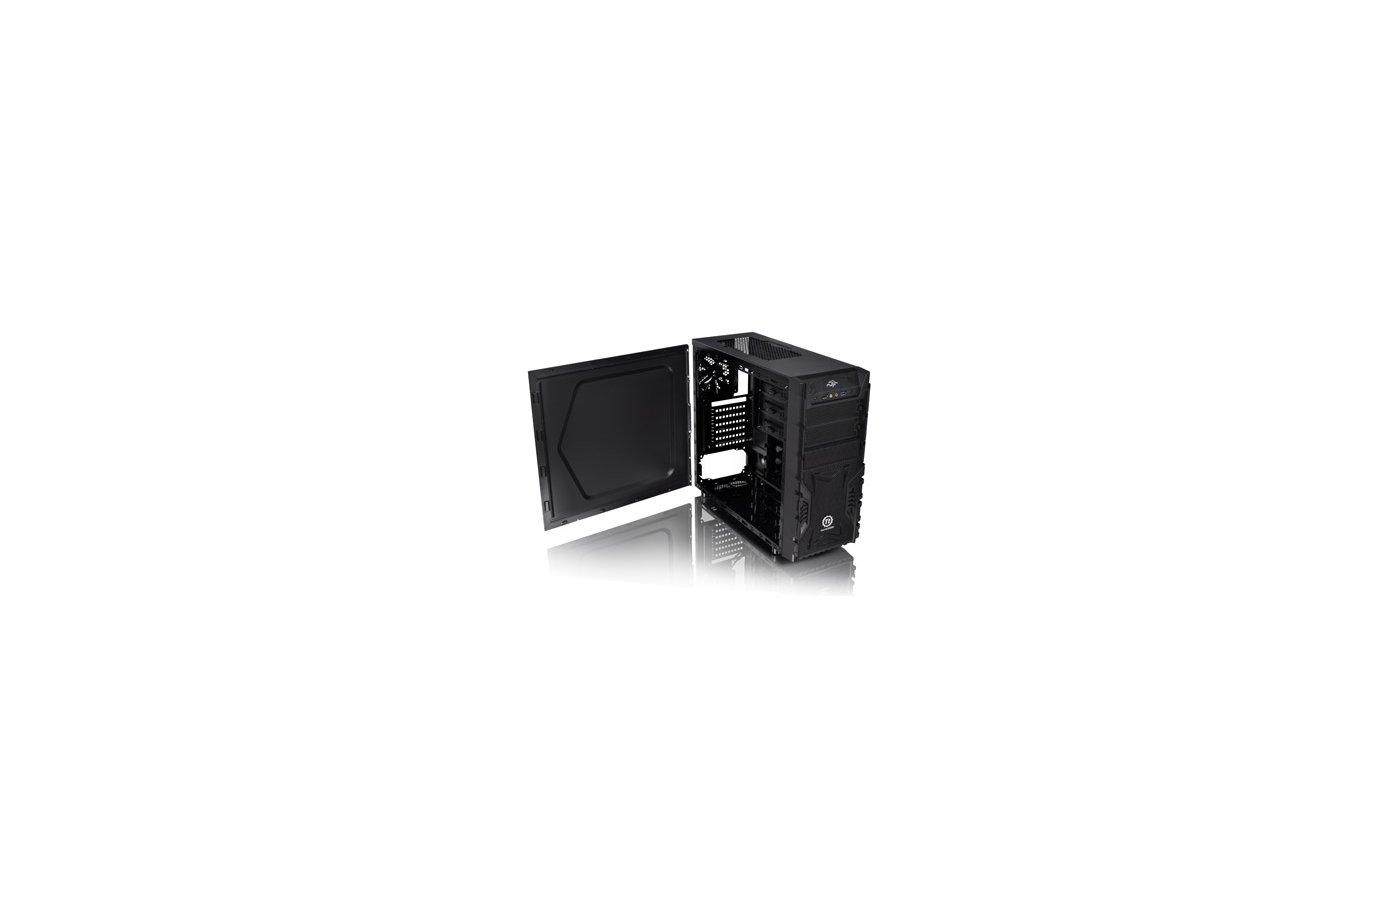 Корпус Thermaltake Versa H23 черный без БП ATX 2x120mm 1xUSB2.0 1xUSB3.0 audio bott PSU